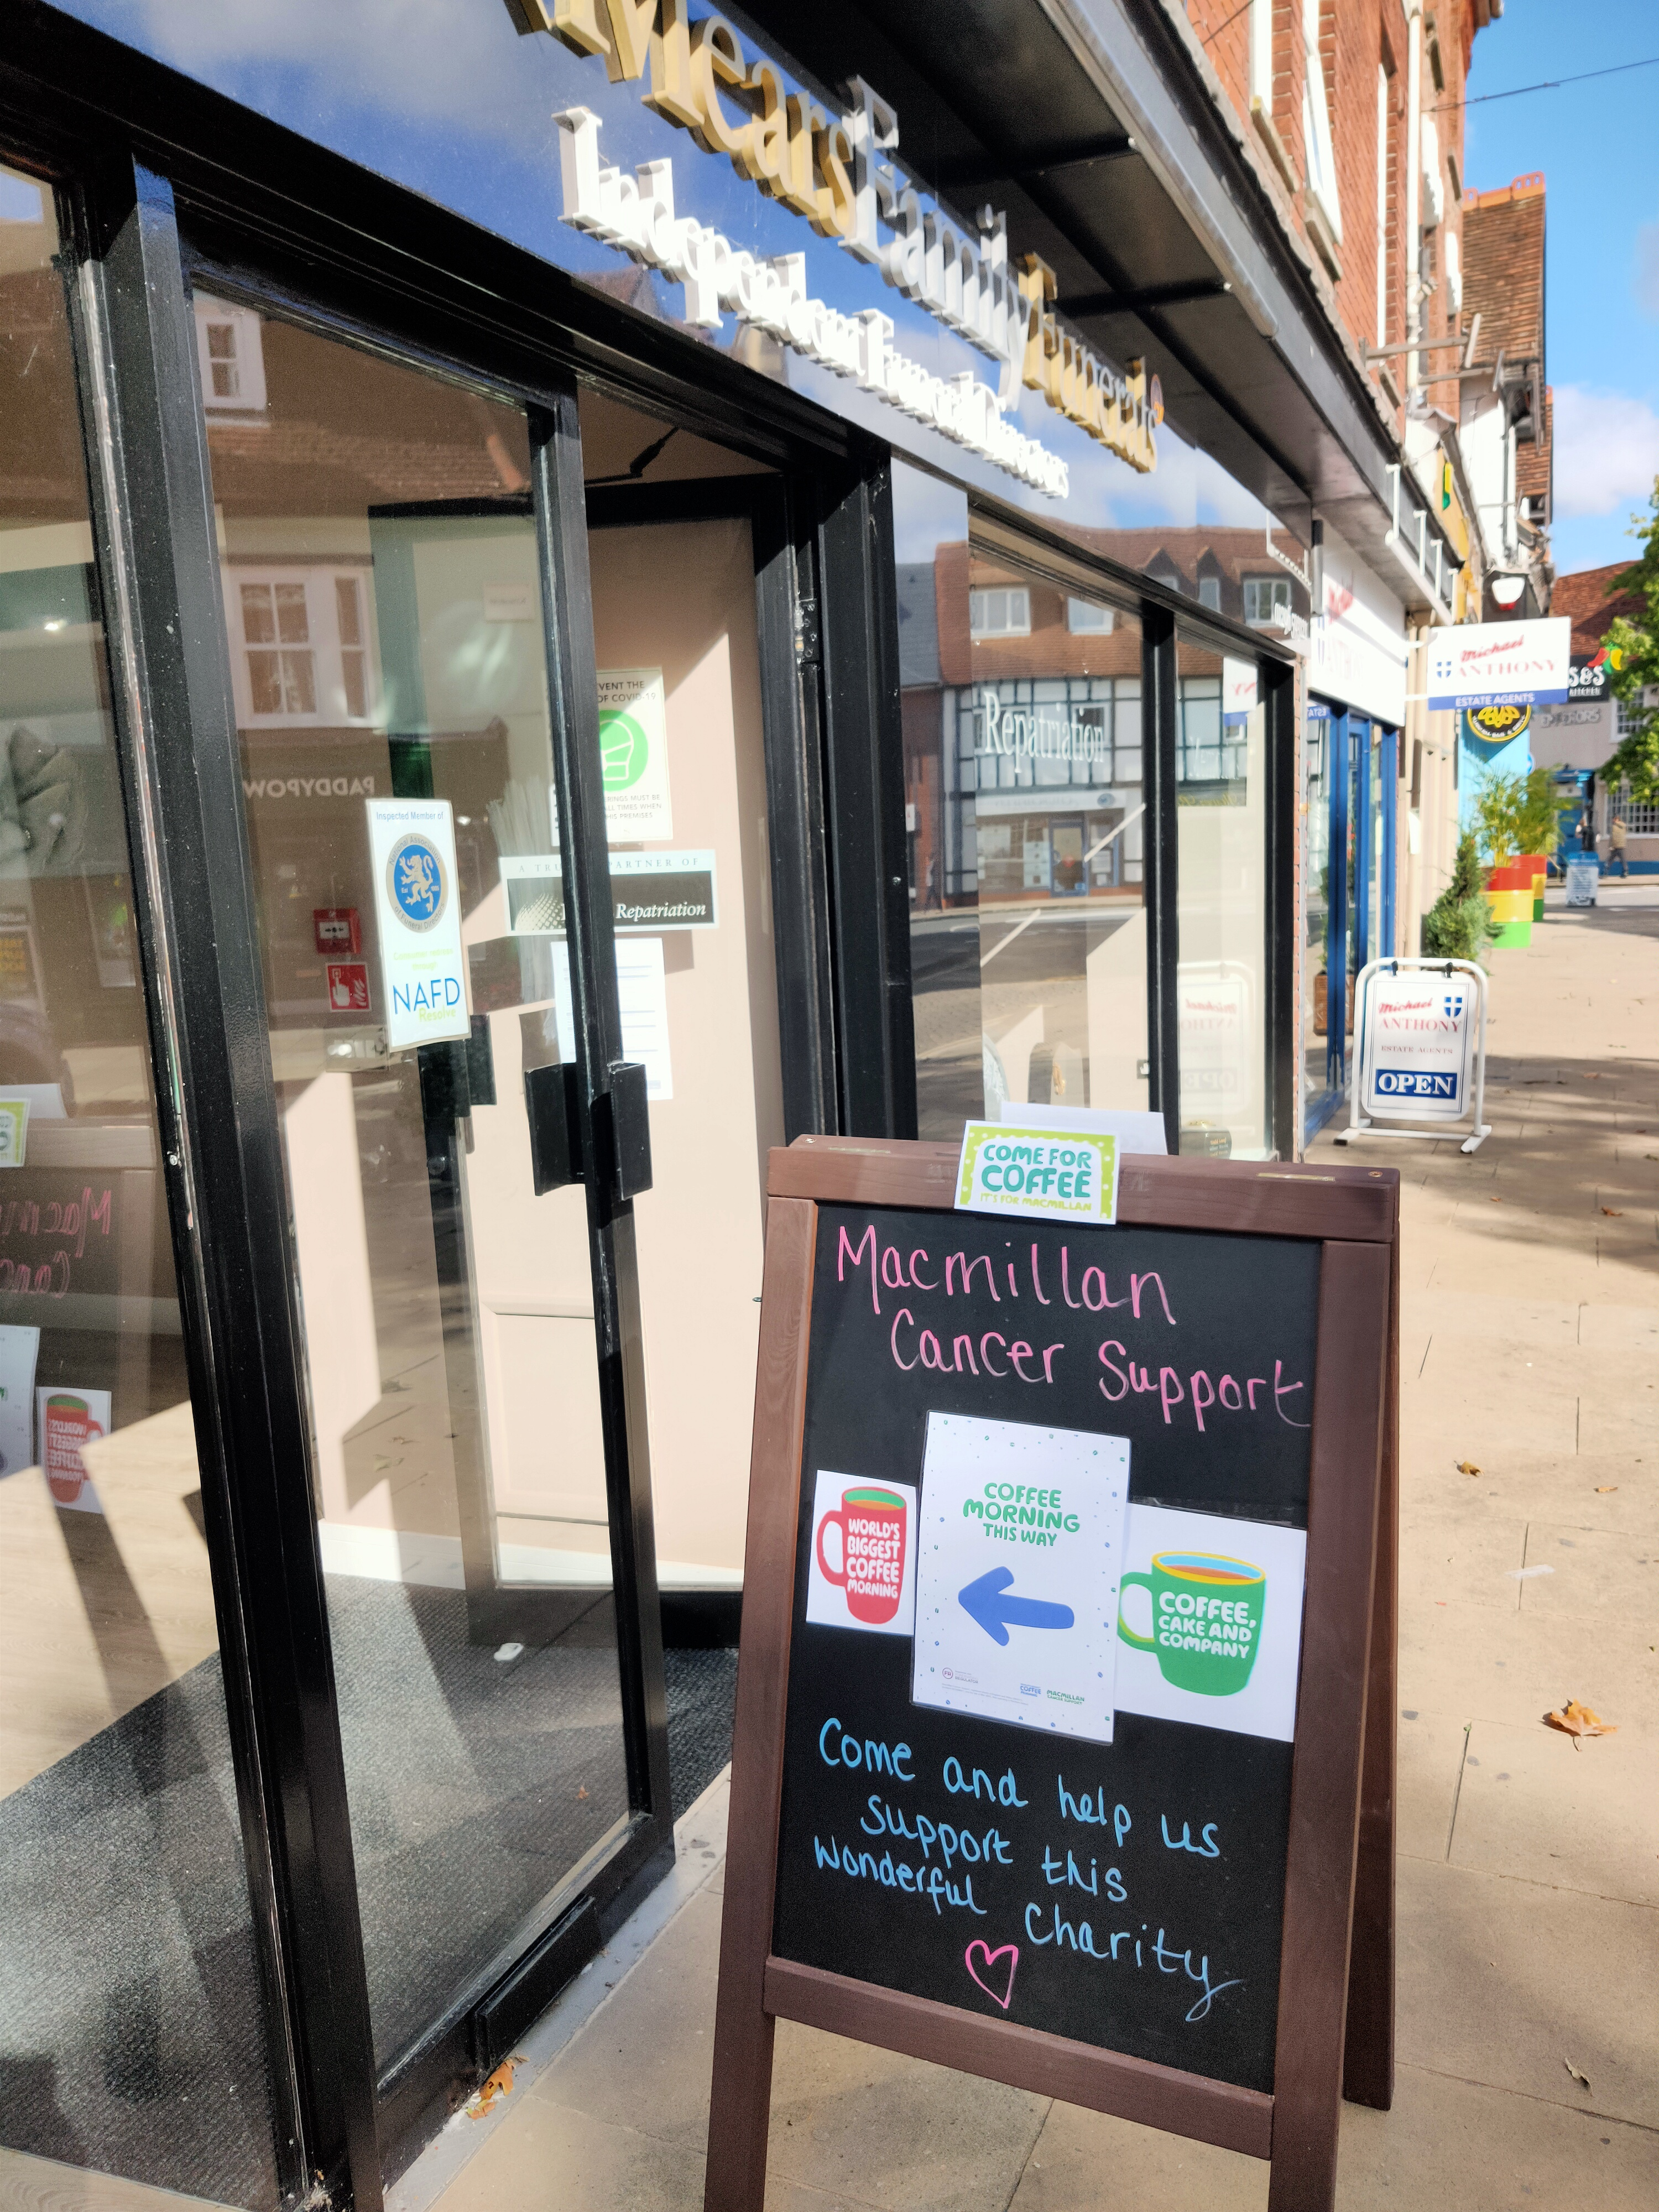 Aylesbury branch hosted Coffee Morning for Macmillan Cancer Support